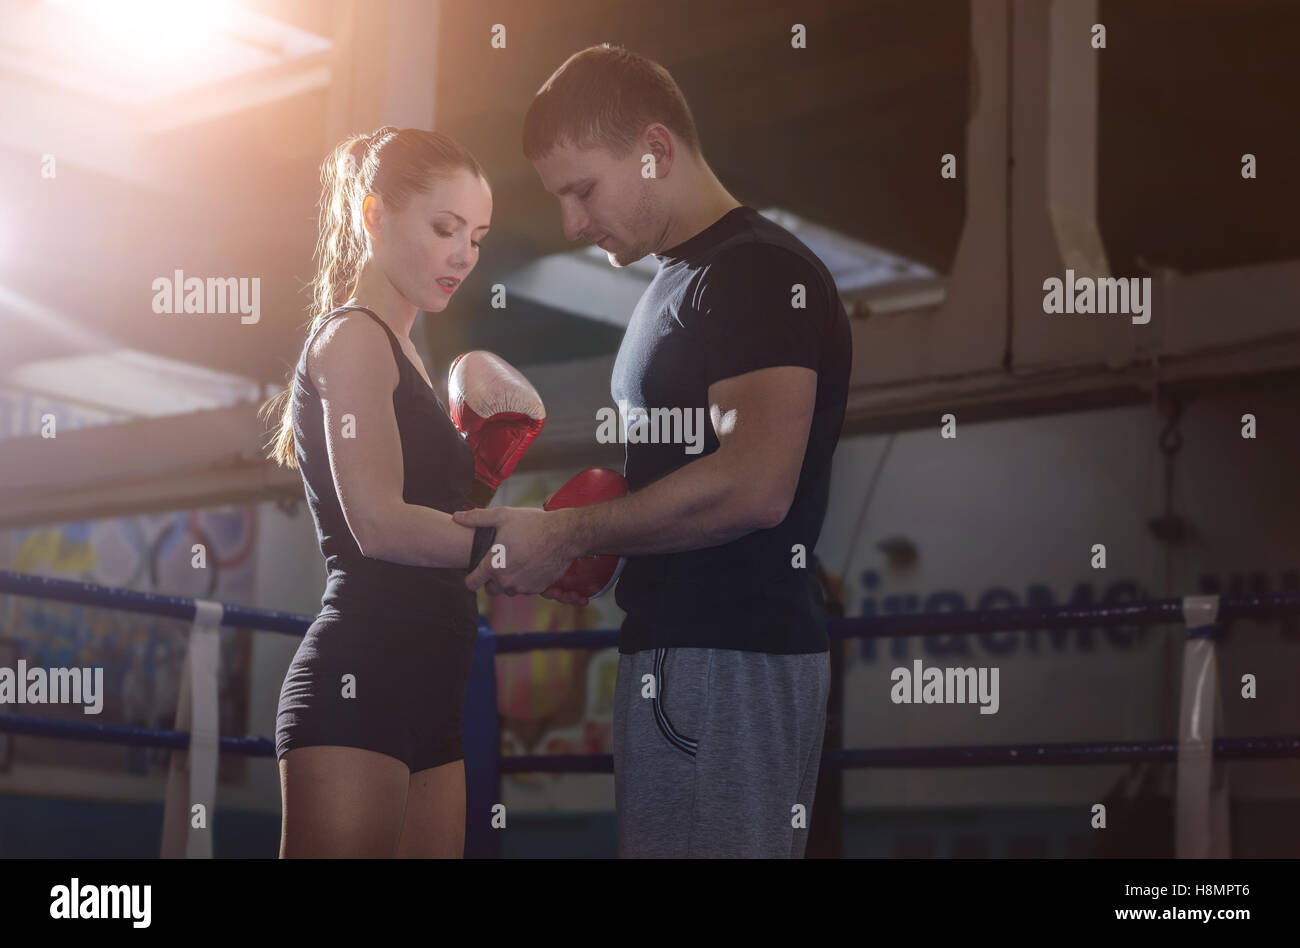 The coach puts on the boxing gloves young athlete before the fight. Backlight. - Stock Image